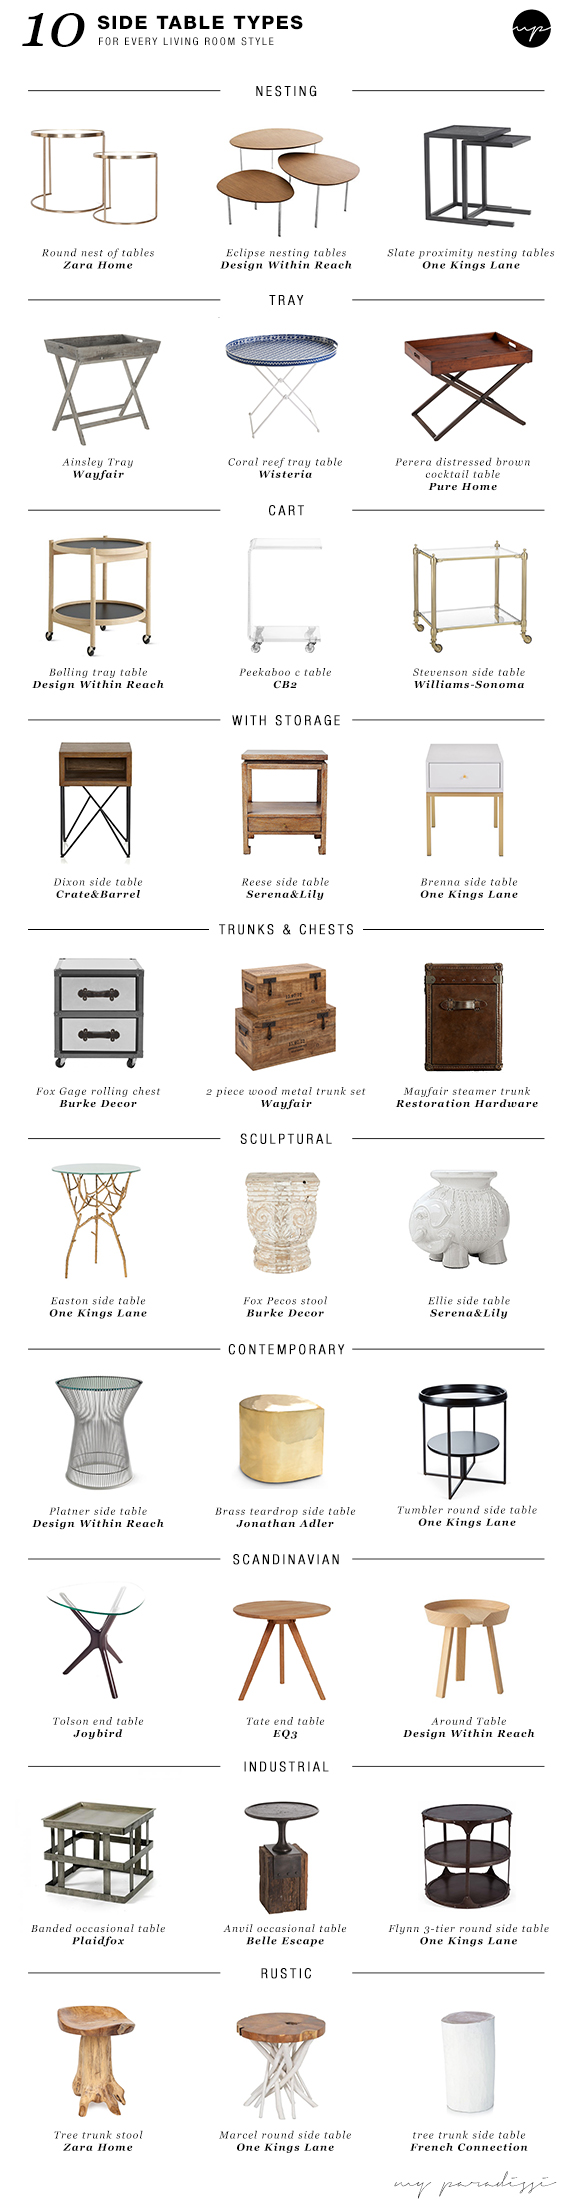 10 side table types for every living room style my paradissi for Table 6 4 specification for highway works